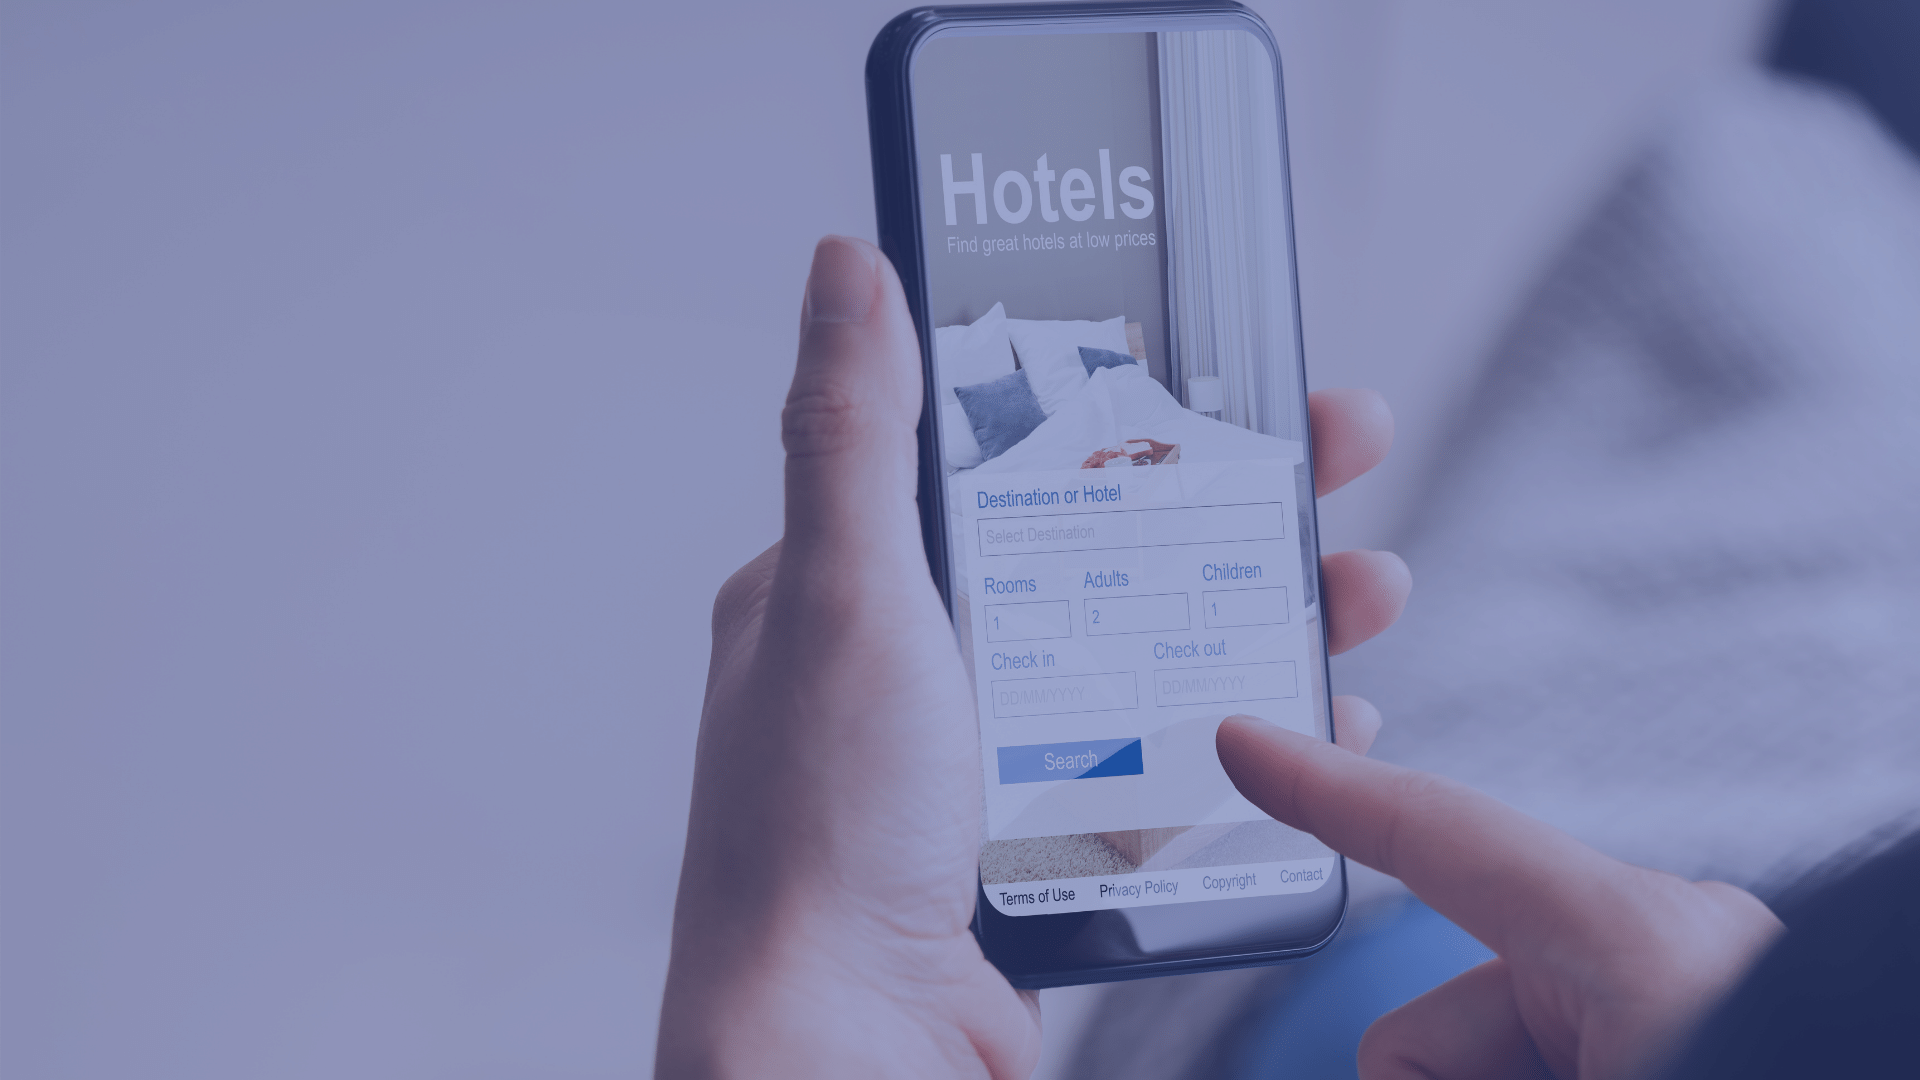 Video l IBE (Internet Booking Engines) & Direct Distribution in Hospitality